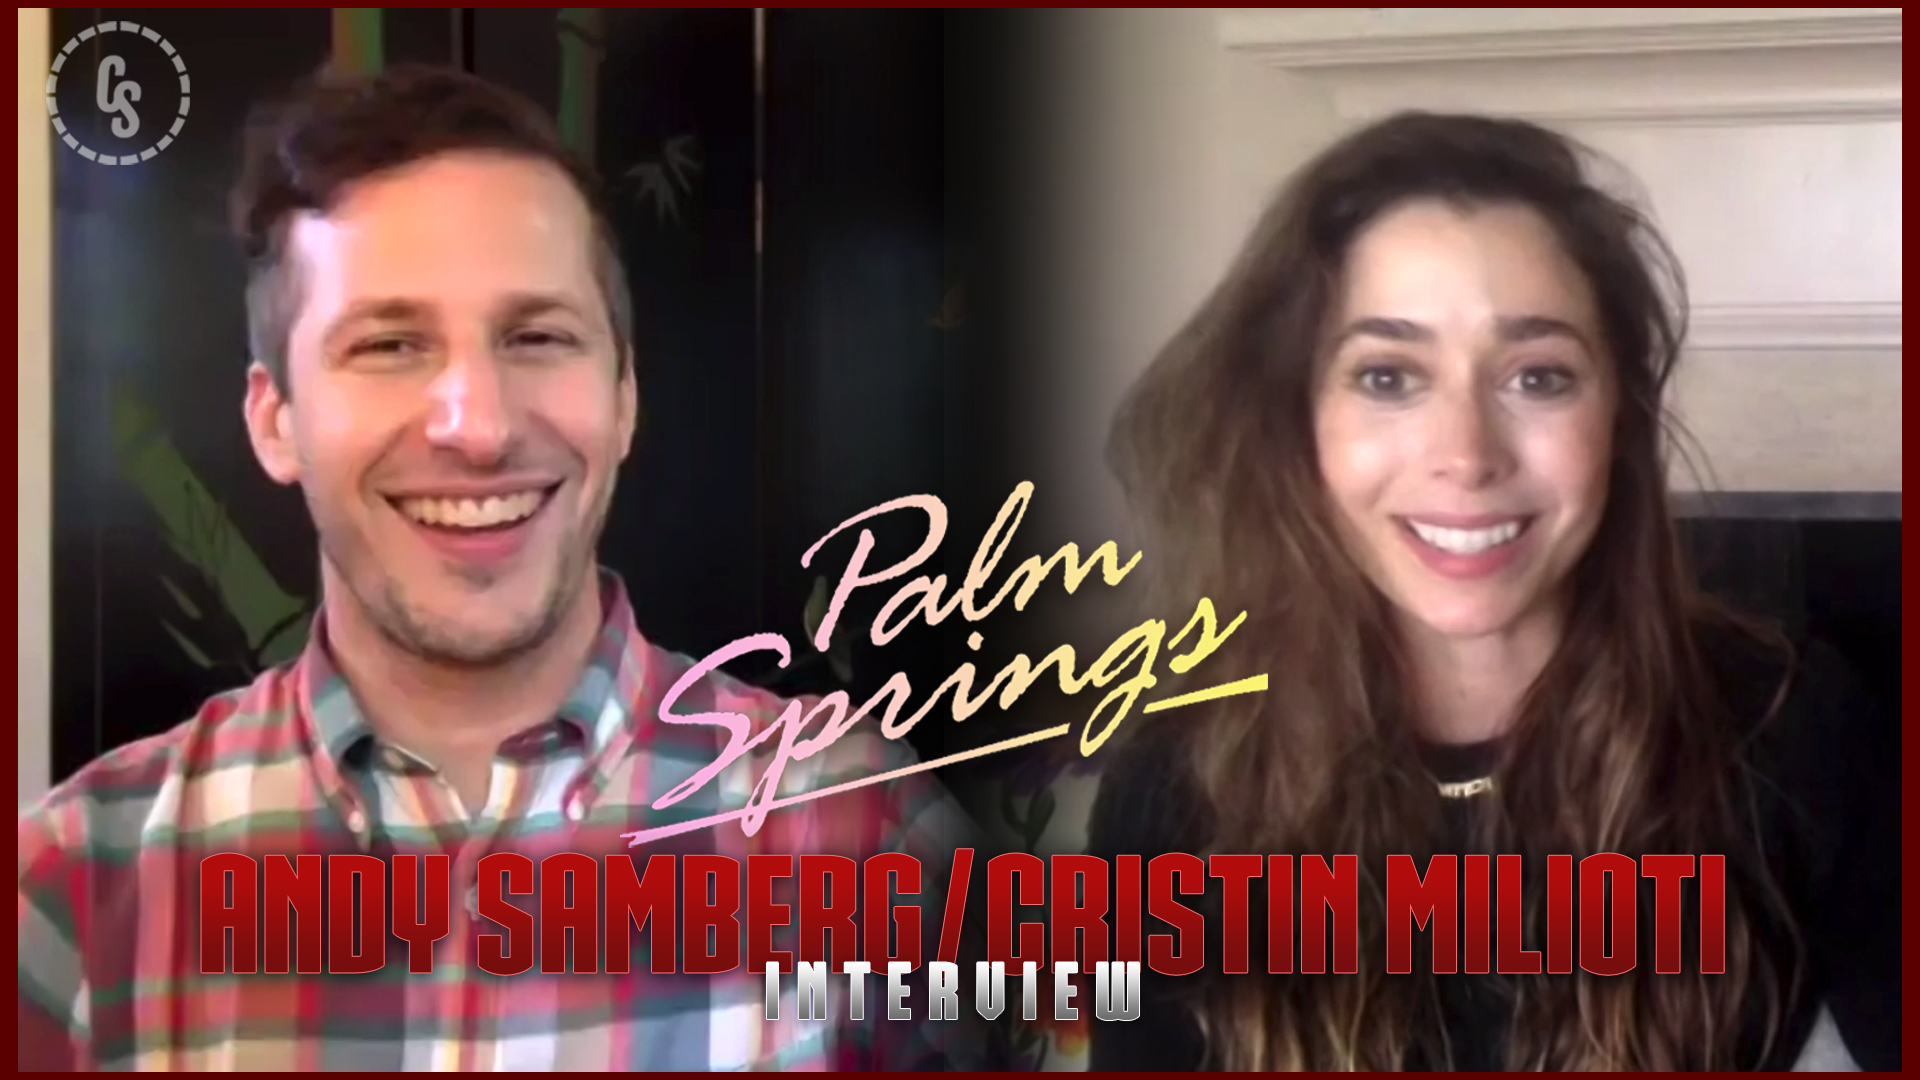 CS Video: Palm Springs Interview with Andy Samberg & Cristin Milioti